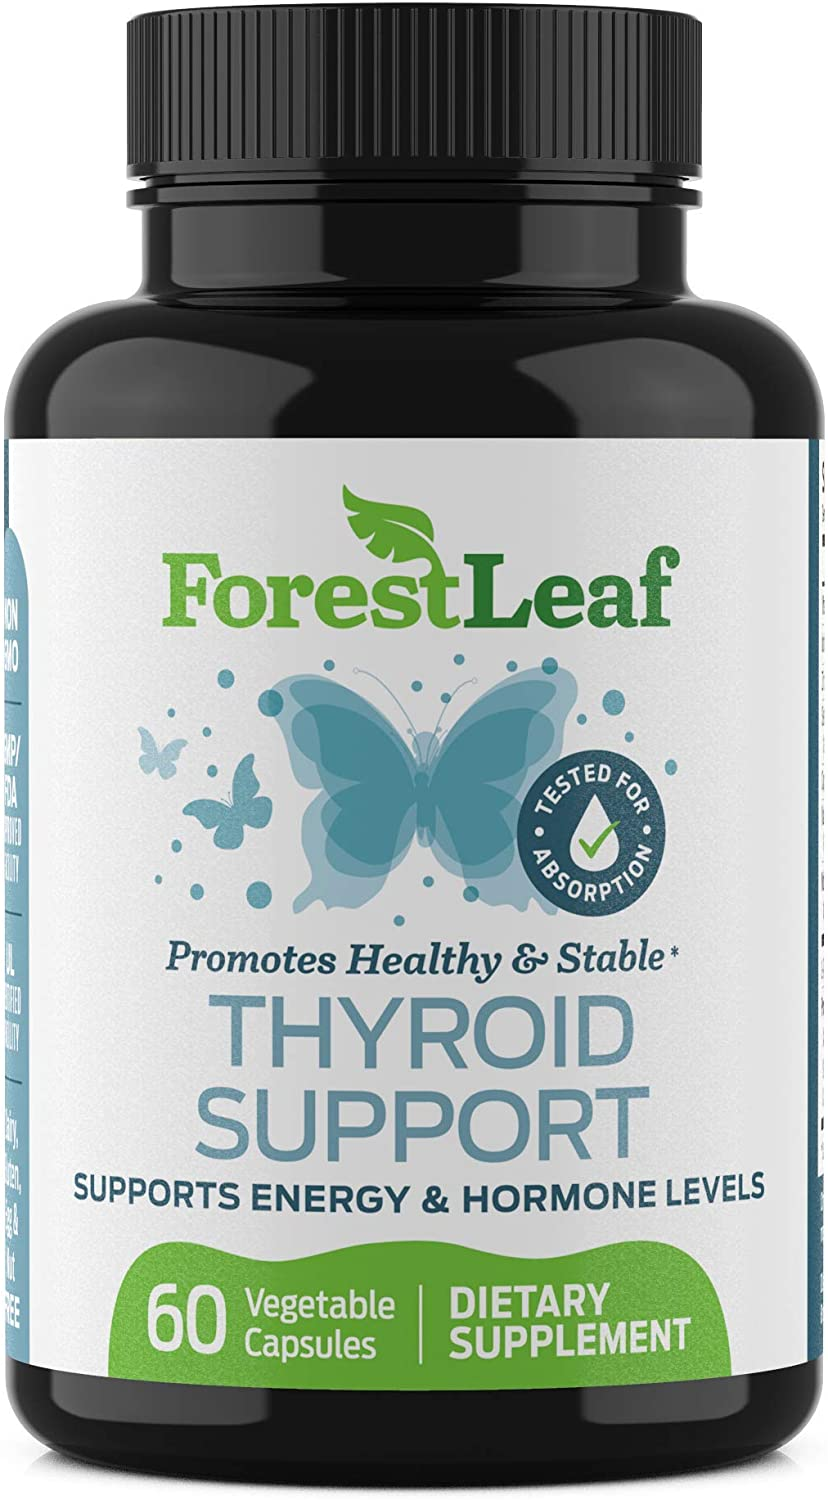 Thyroid Support Supplement with Iodine - All Natural Mineral and